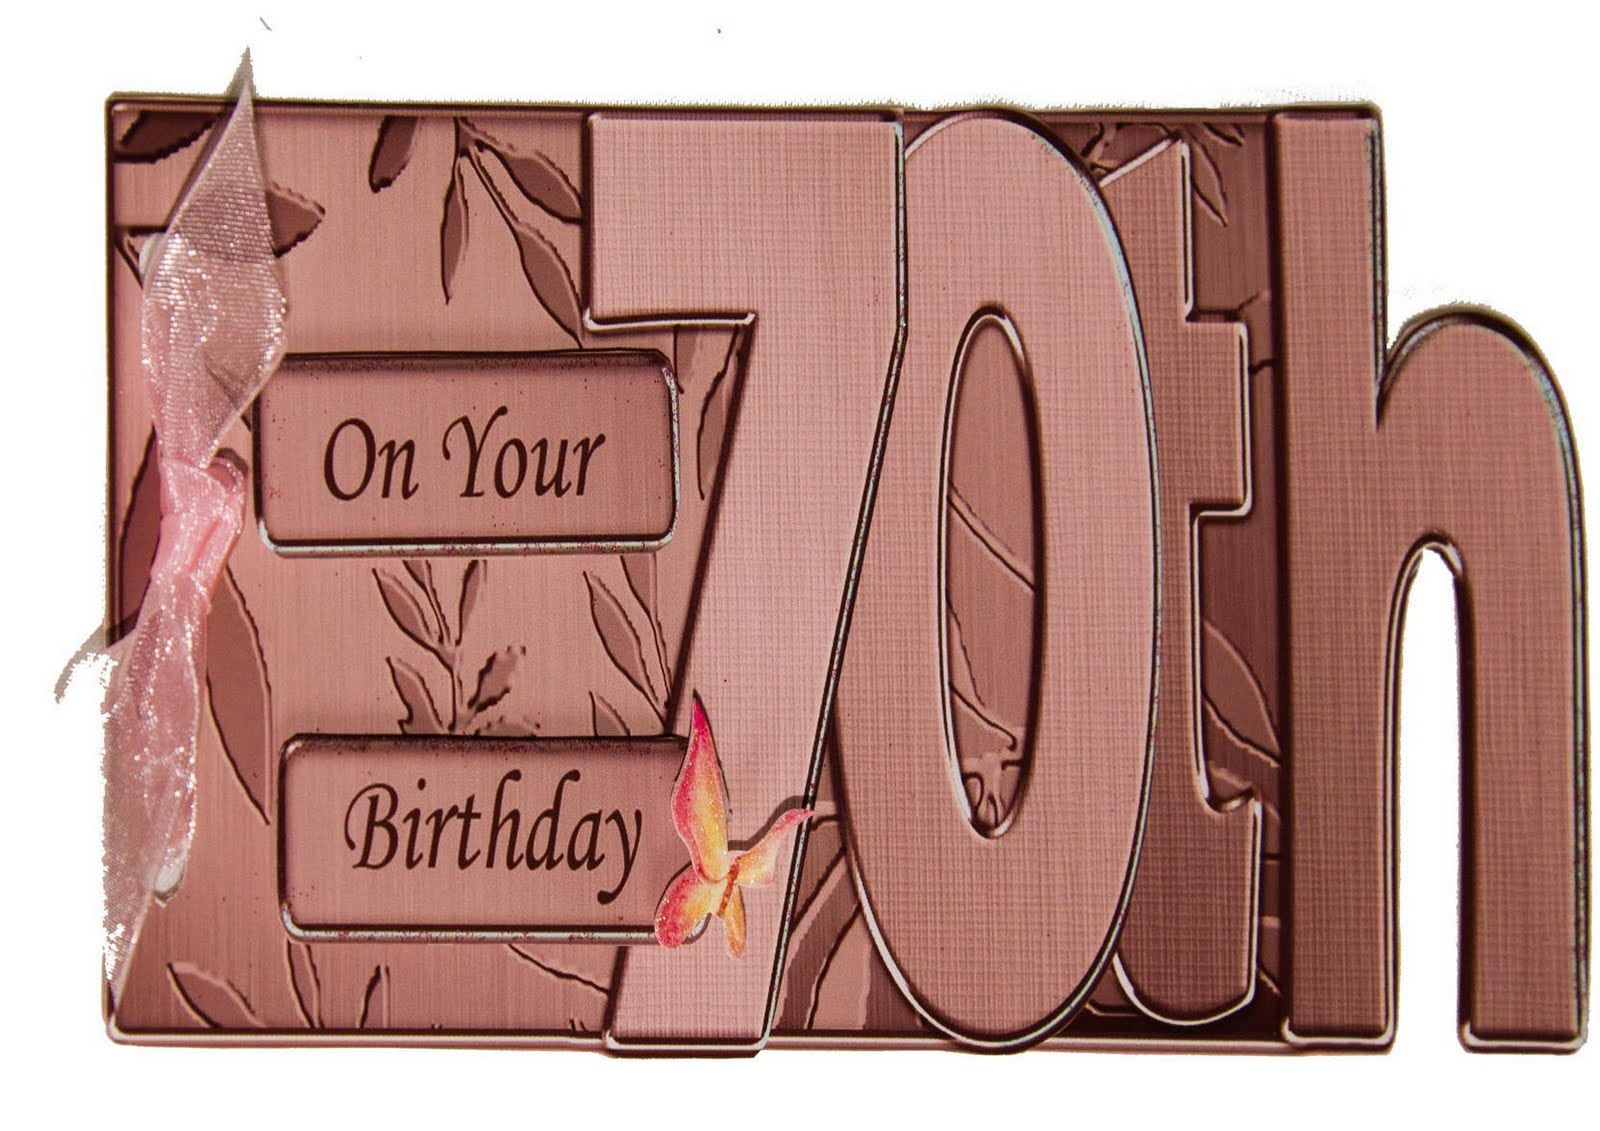 A 70th Birthday Card Designed By Carol Clark Which Is Suitable For Male Or Female